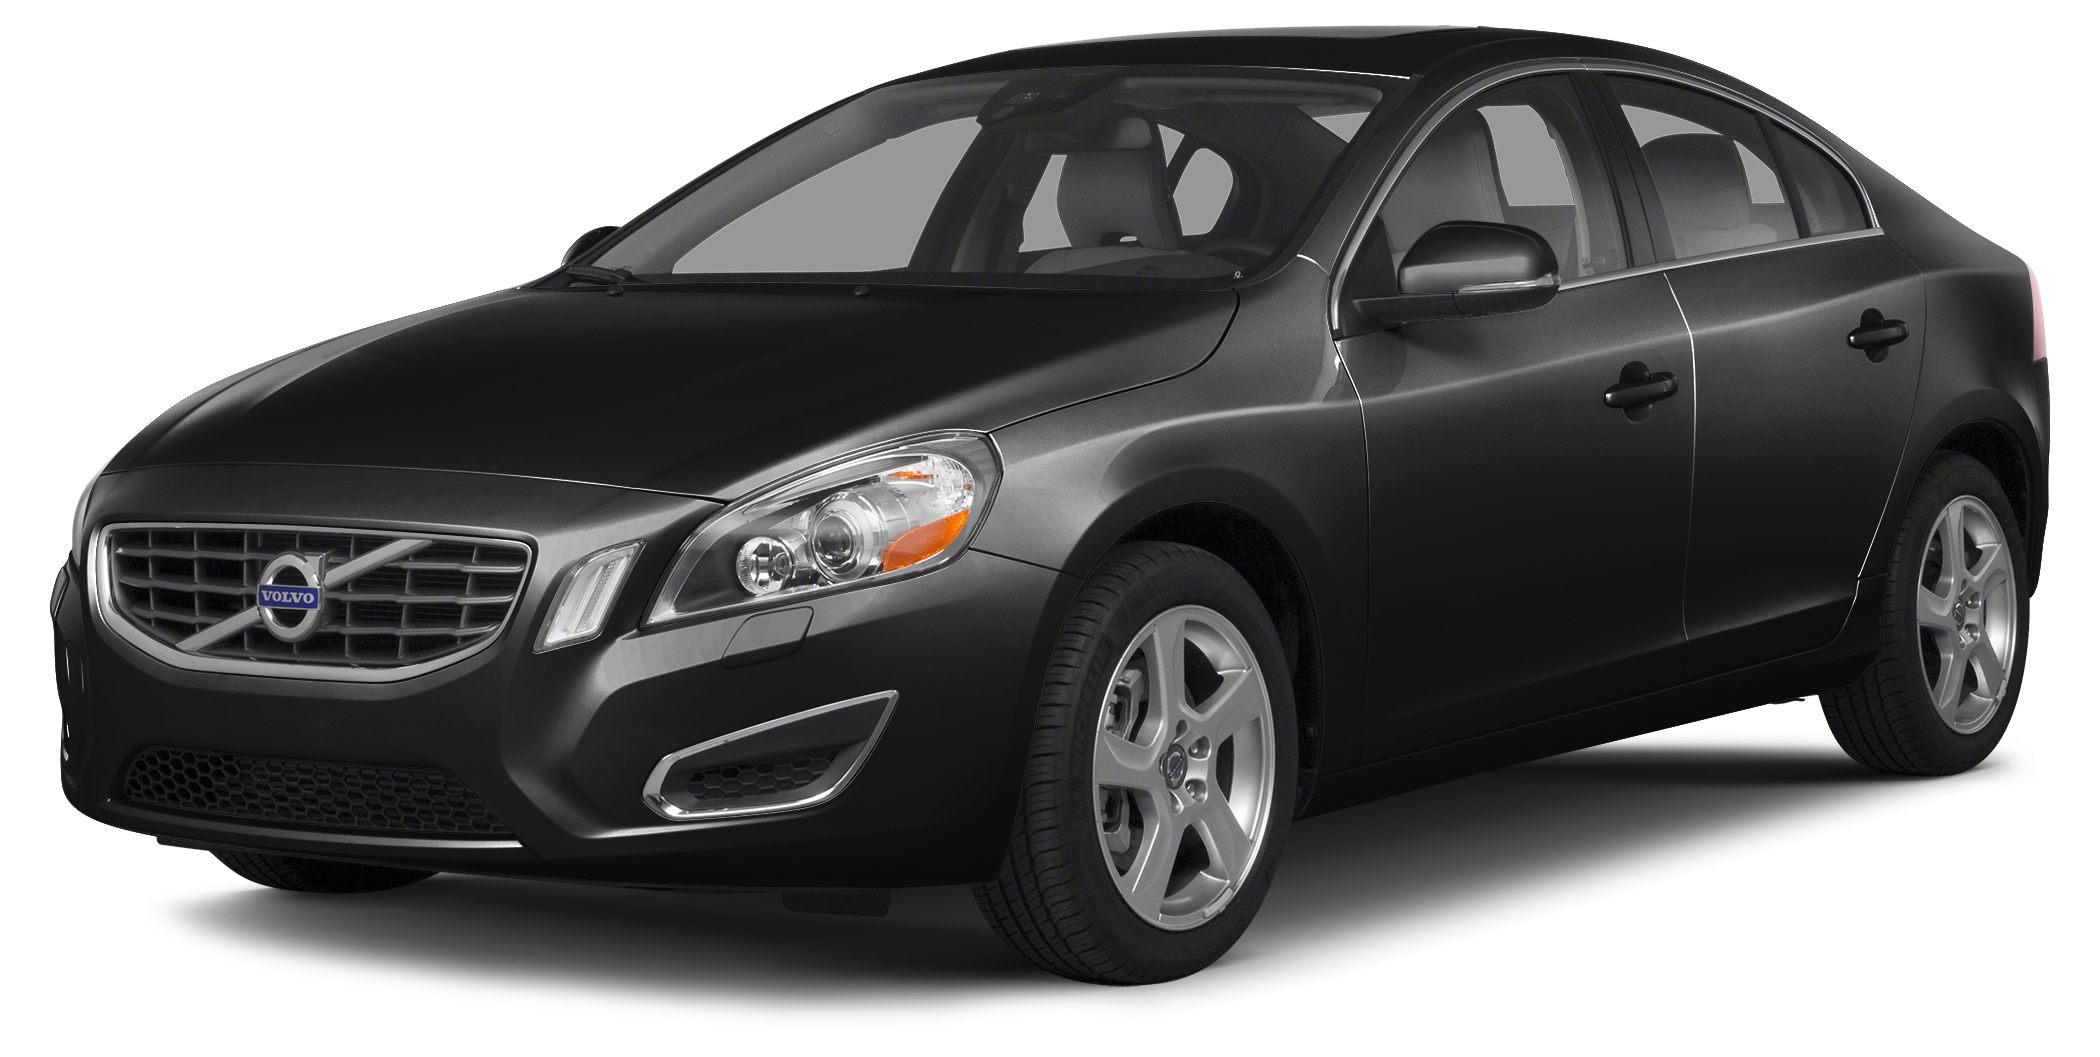 2013 Volvo S60 T6 A ONE OWNER LOCAL TRADE-IN WITH LOW MILES One owner - it doesnt get any better